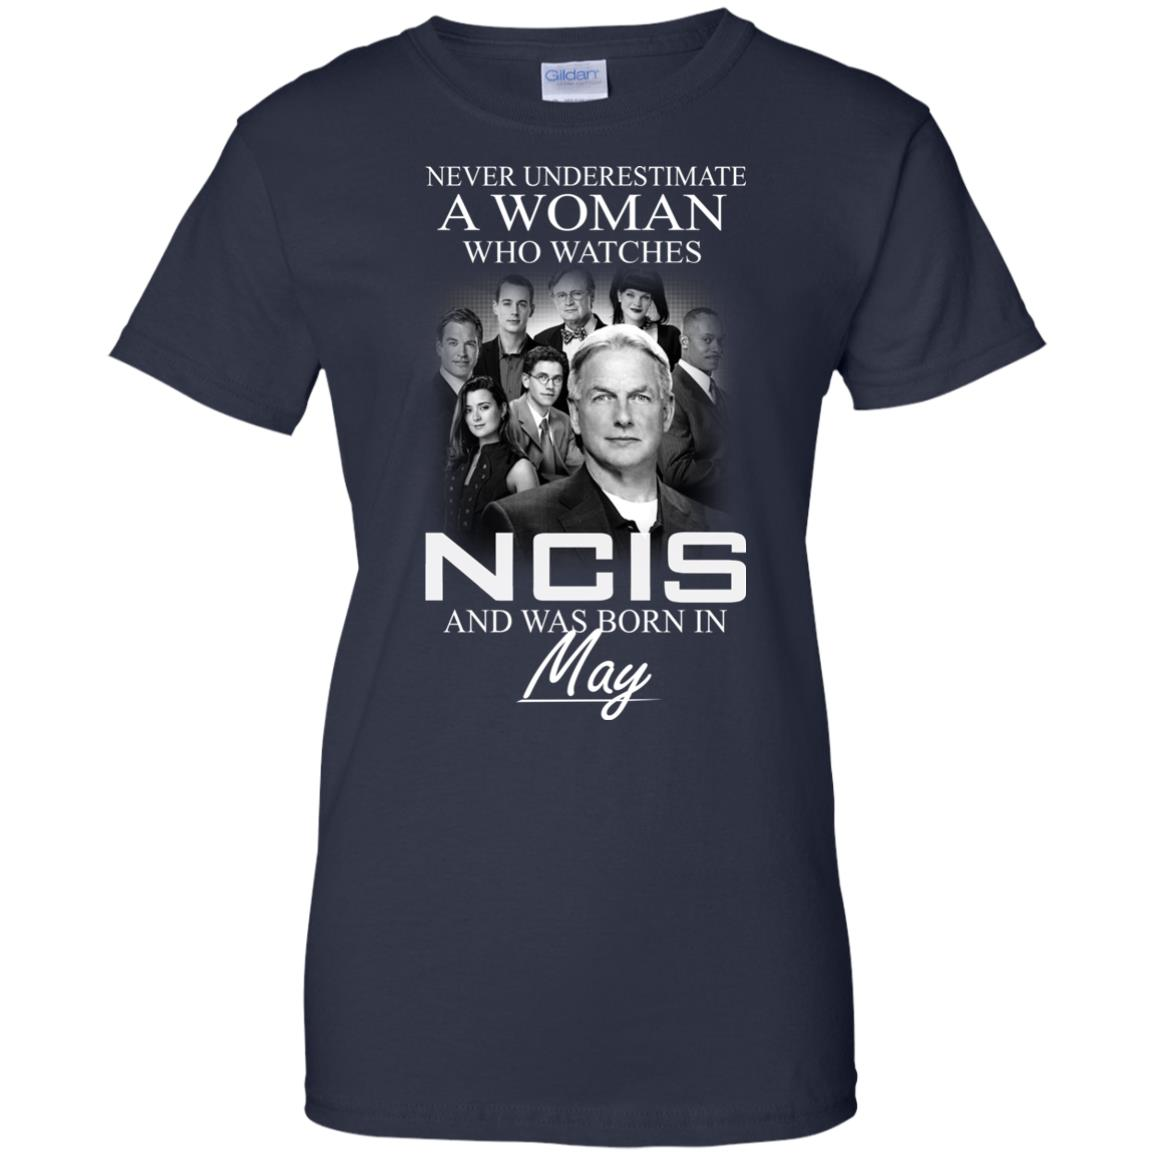 Never underestimate A Woman who watches NCIS and was born in May shirt - image 1193